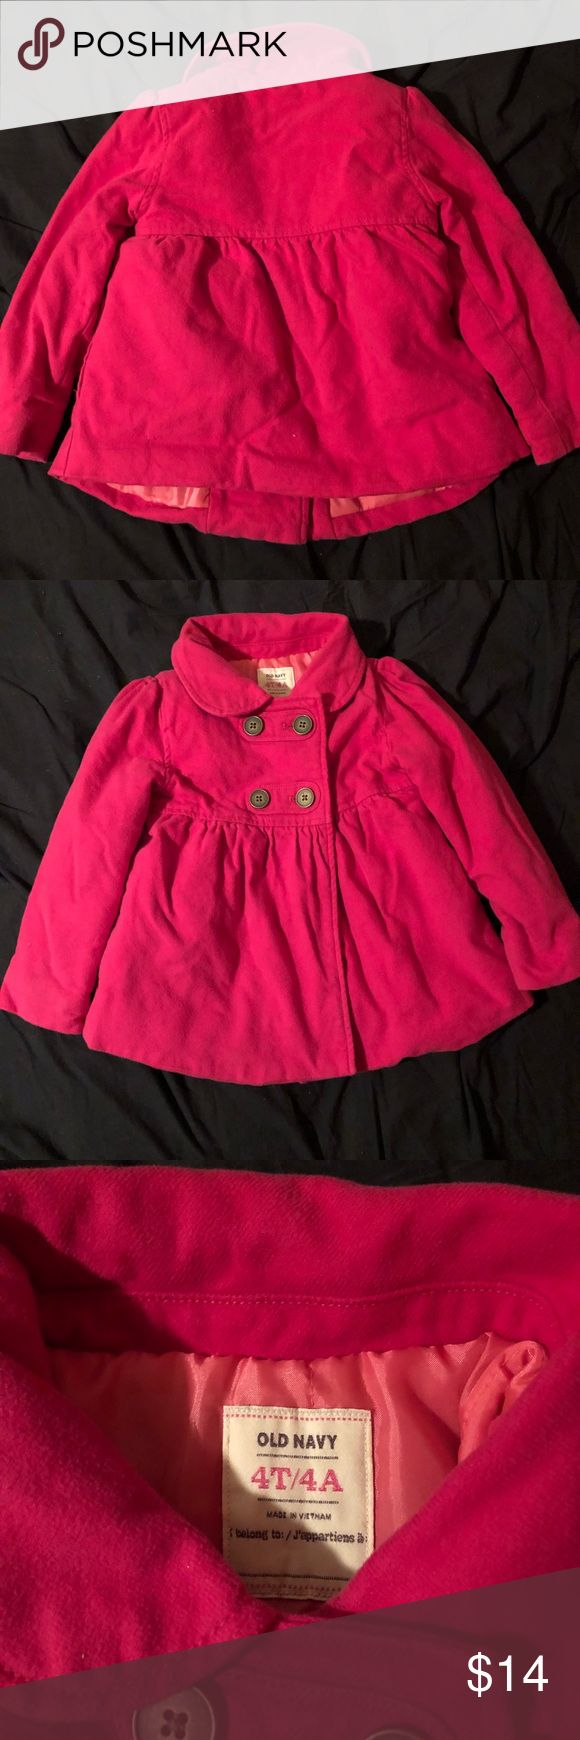 Little girls peacoat Old navy hot pink peacoat Size 4t In great condition no tears or stains Jackets & Coats Pea Coats